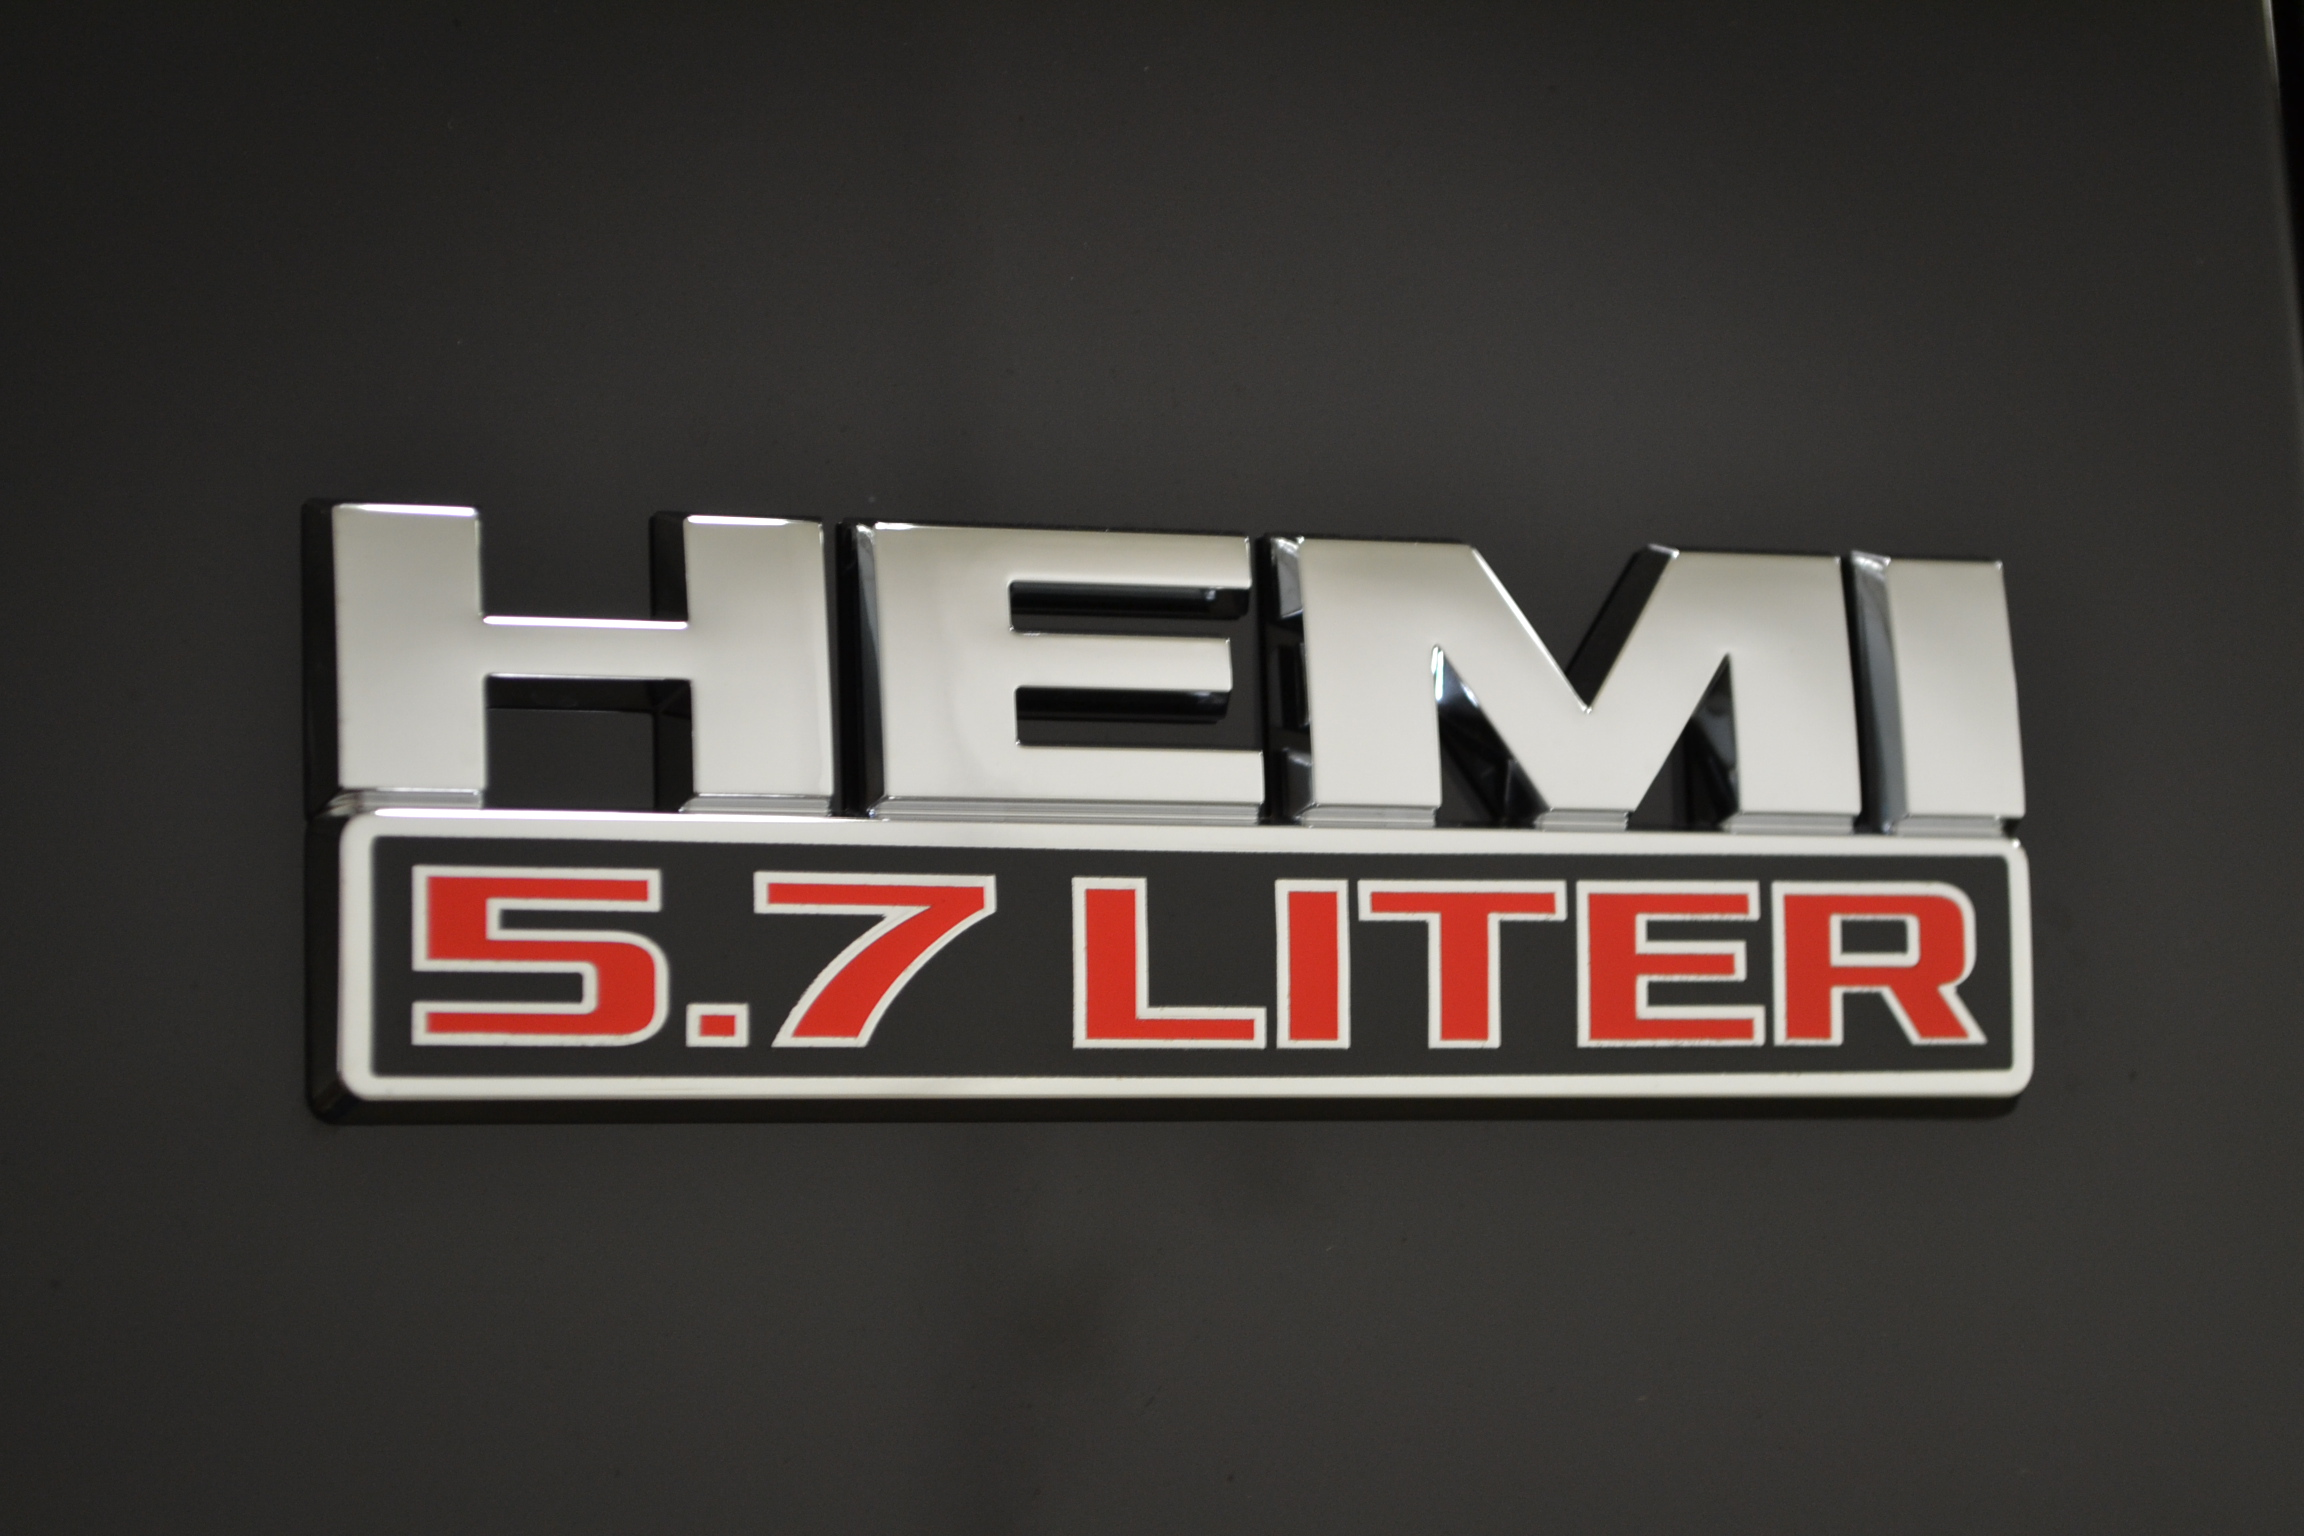 2014 Ram Truck HEMI 5.7 Liter - Dave Smith Blog